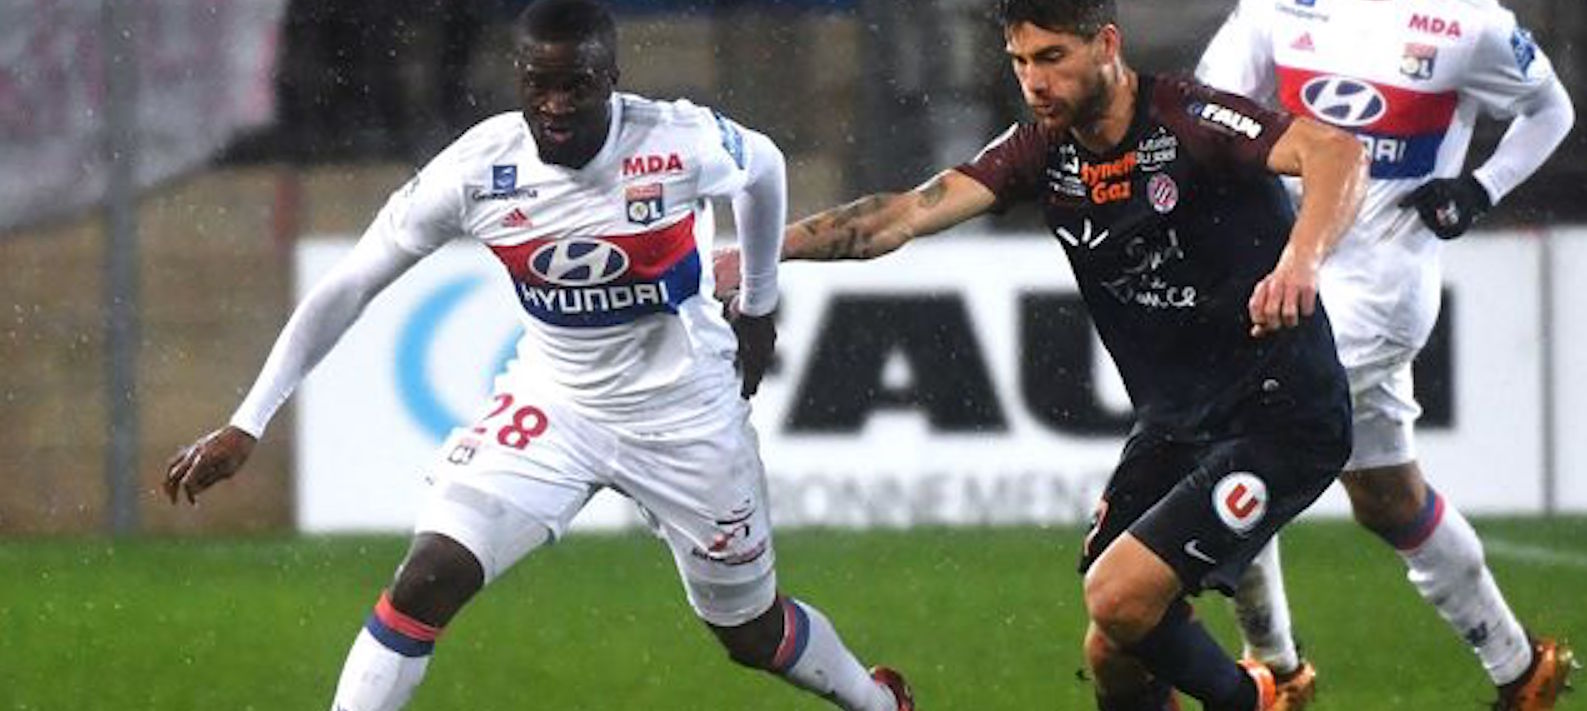 Manchester United express interest in Lyon midfielder Tanguy Ndombele – report